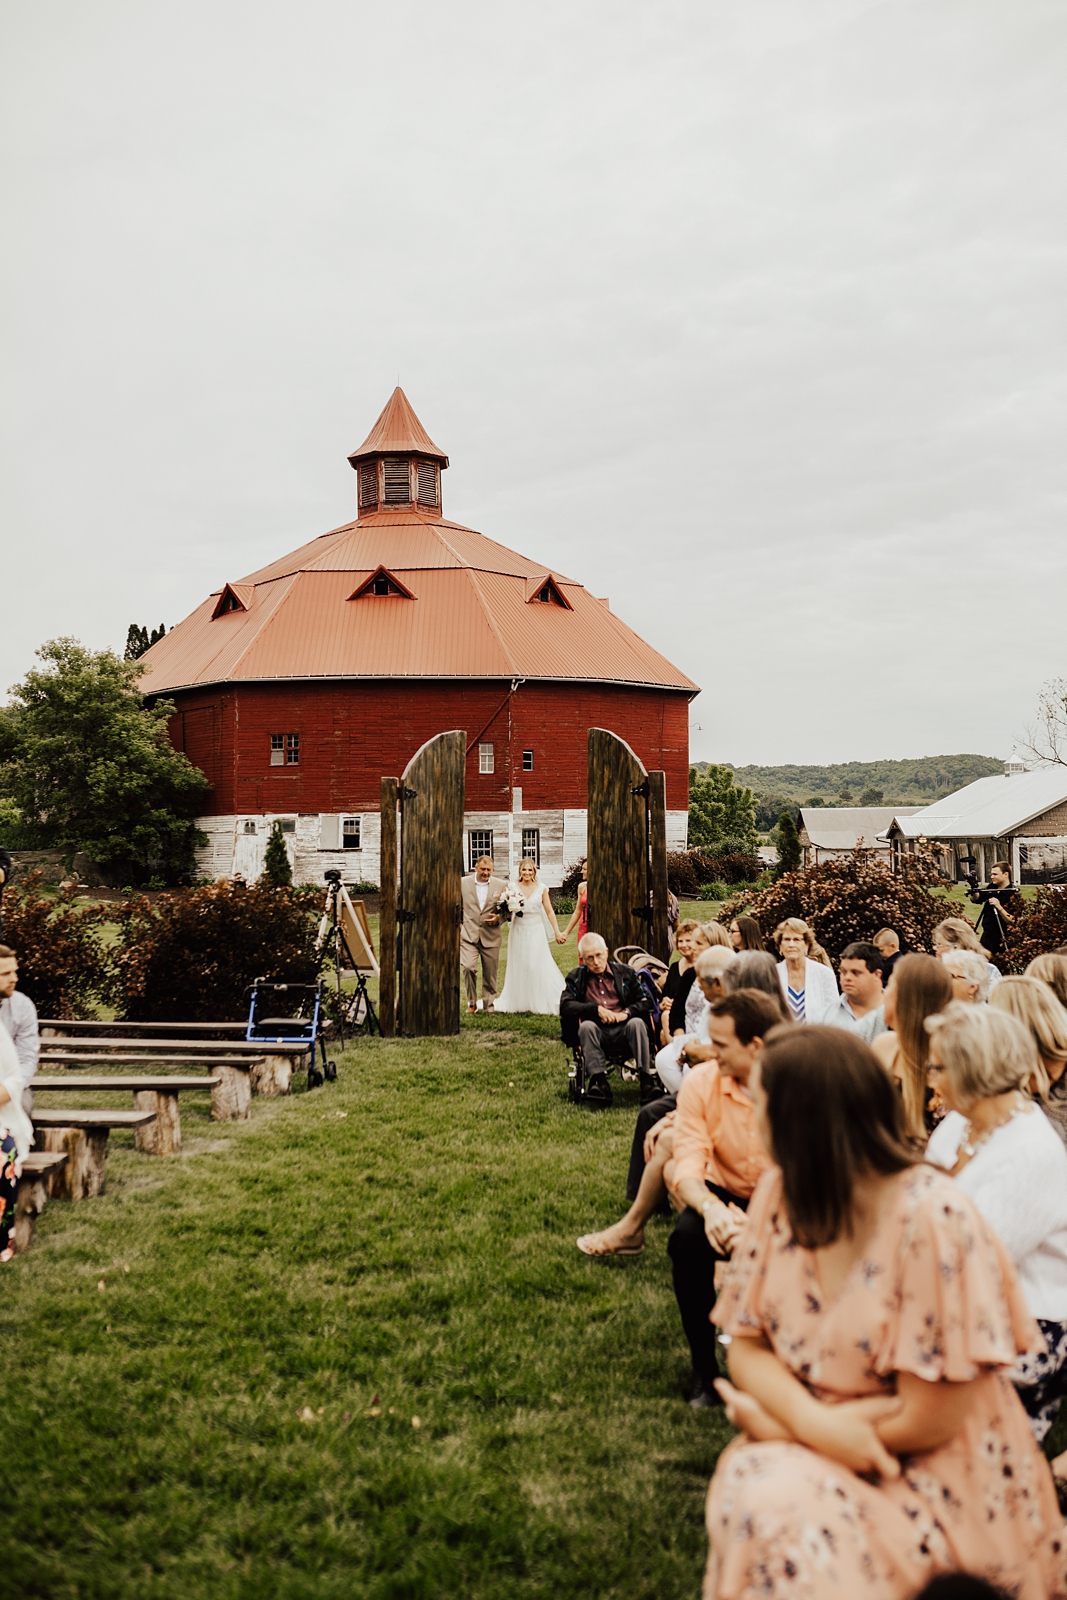 Vanessa & Michael Boho Chic Hidden Meadow & Barn Wedding in Pepin, WI_0568.jpg